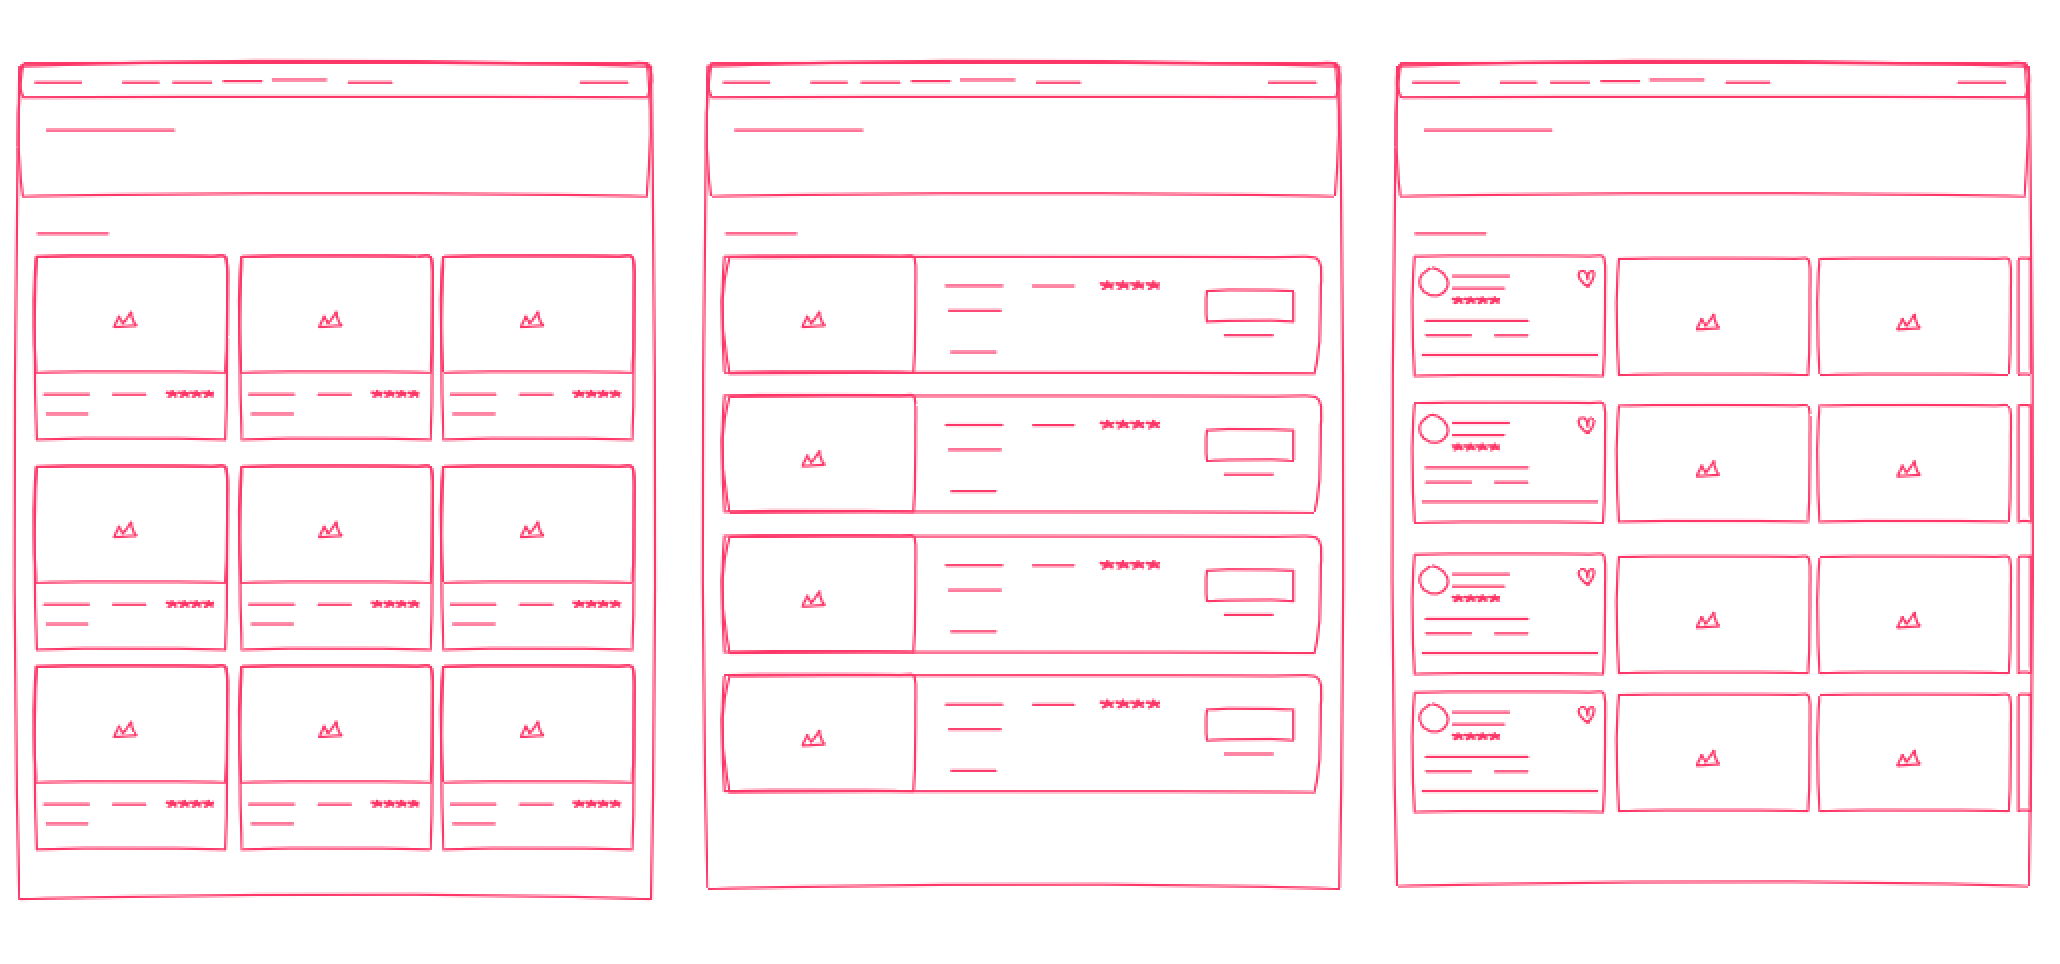 Wireframe sketches of UI concepts.